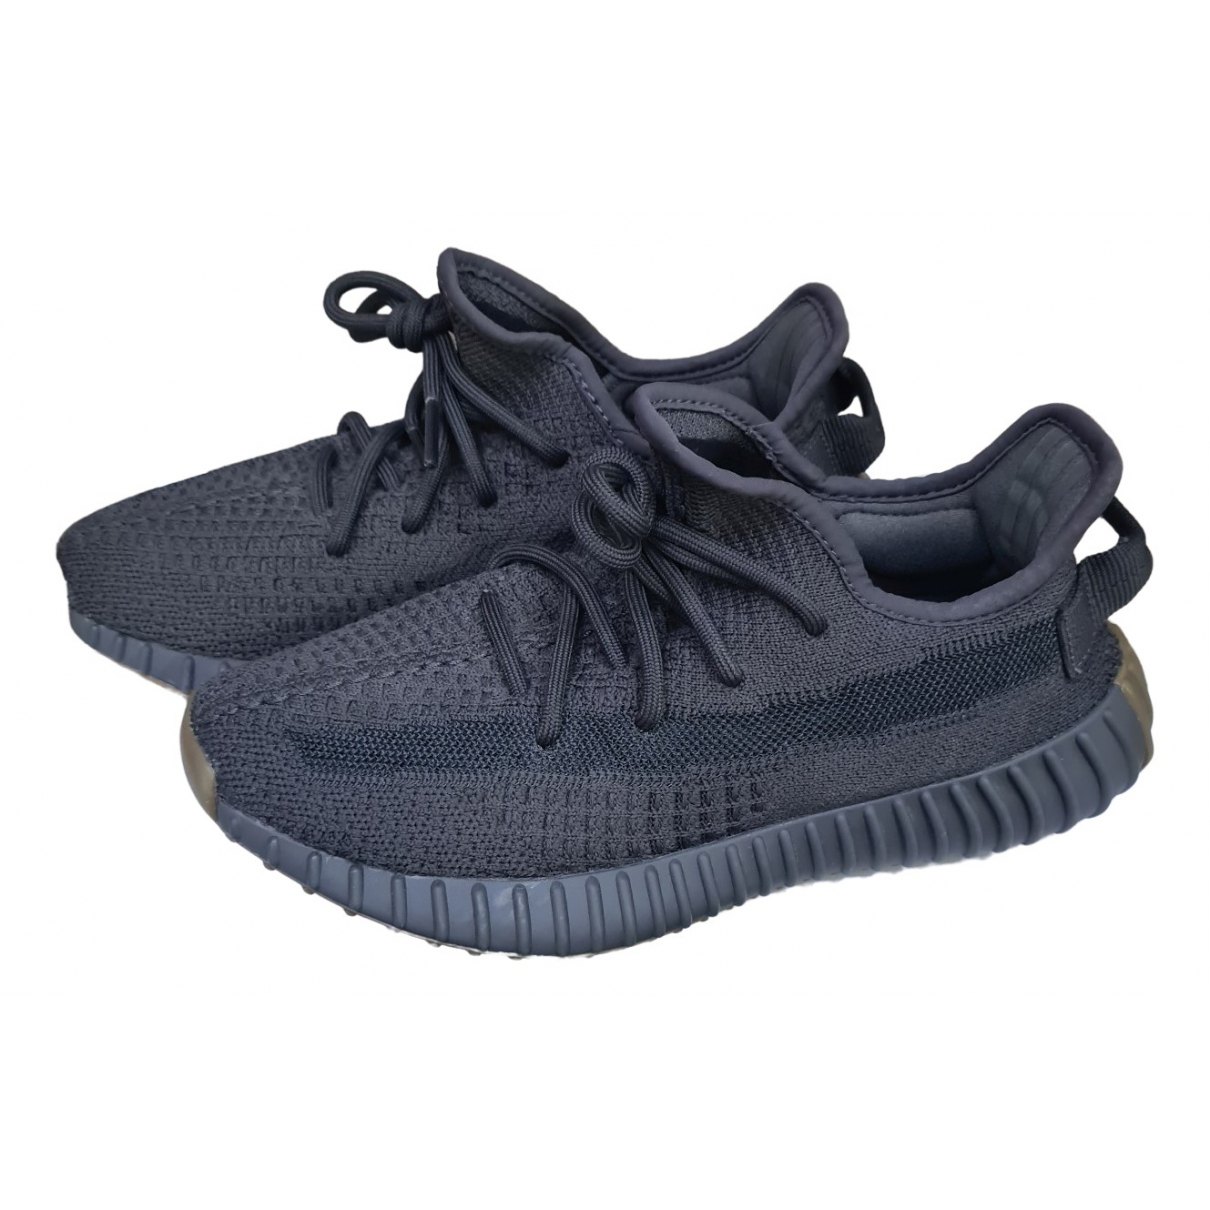 Yeezy X Adidas Boost 350 V2 Rubber Trainers for Women 5.5 UK